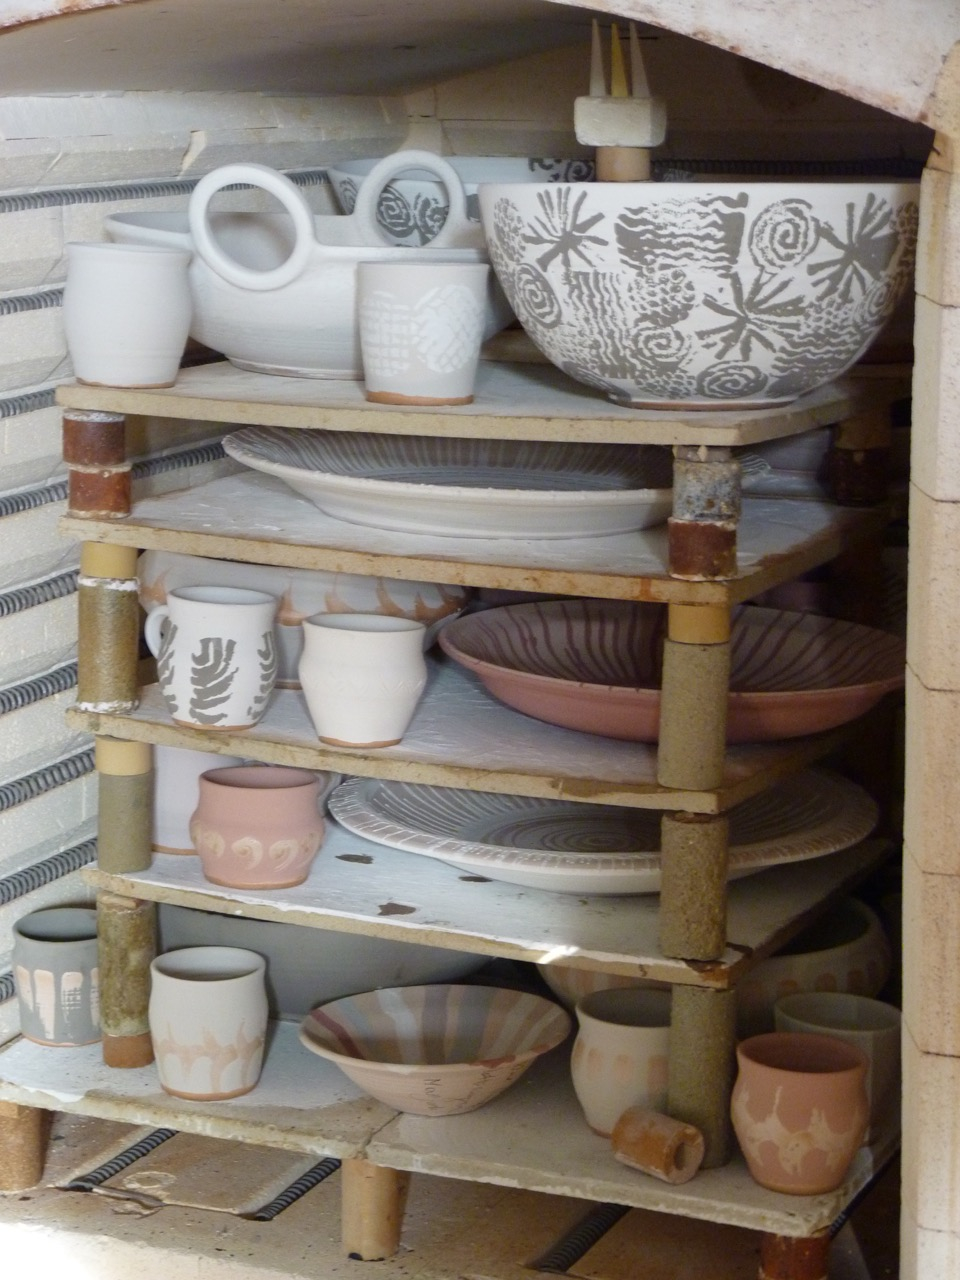 A kiln packed to the brim with unglazed ceramics by Konstanze Harms.